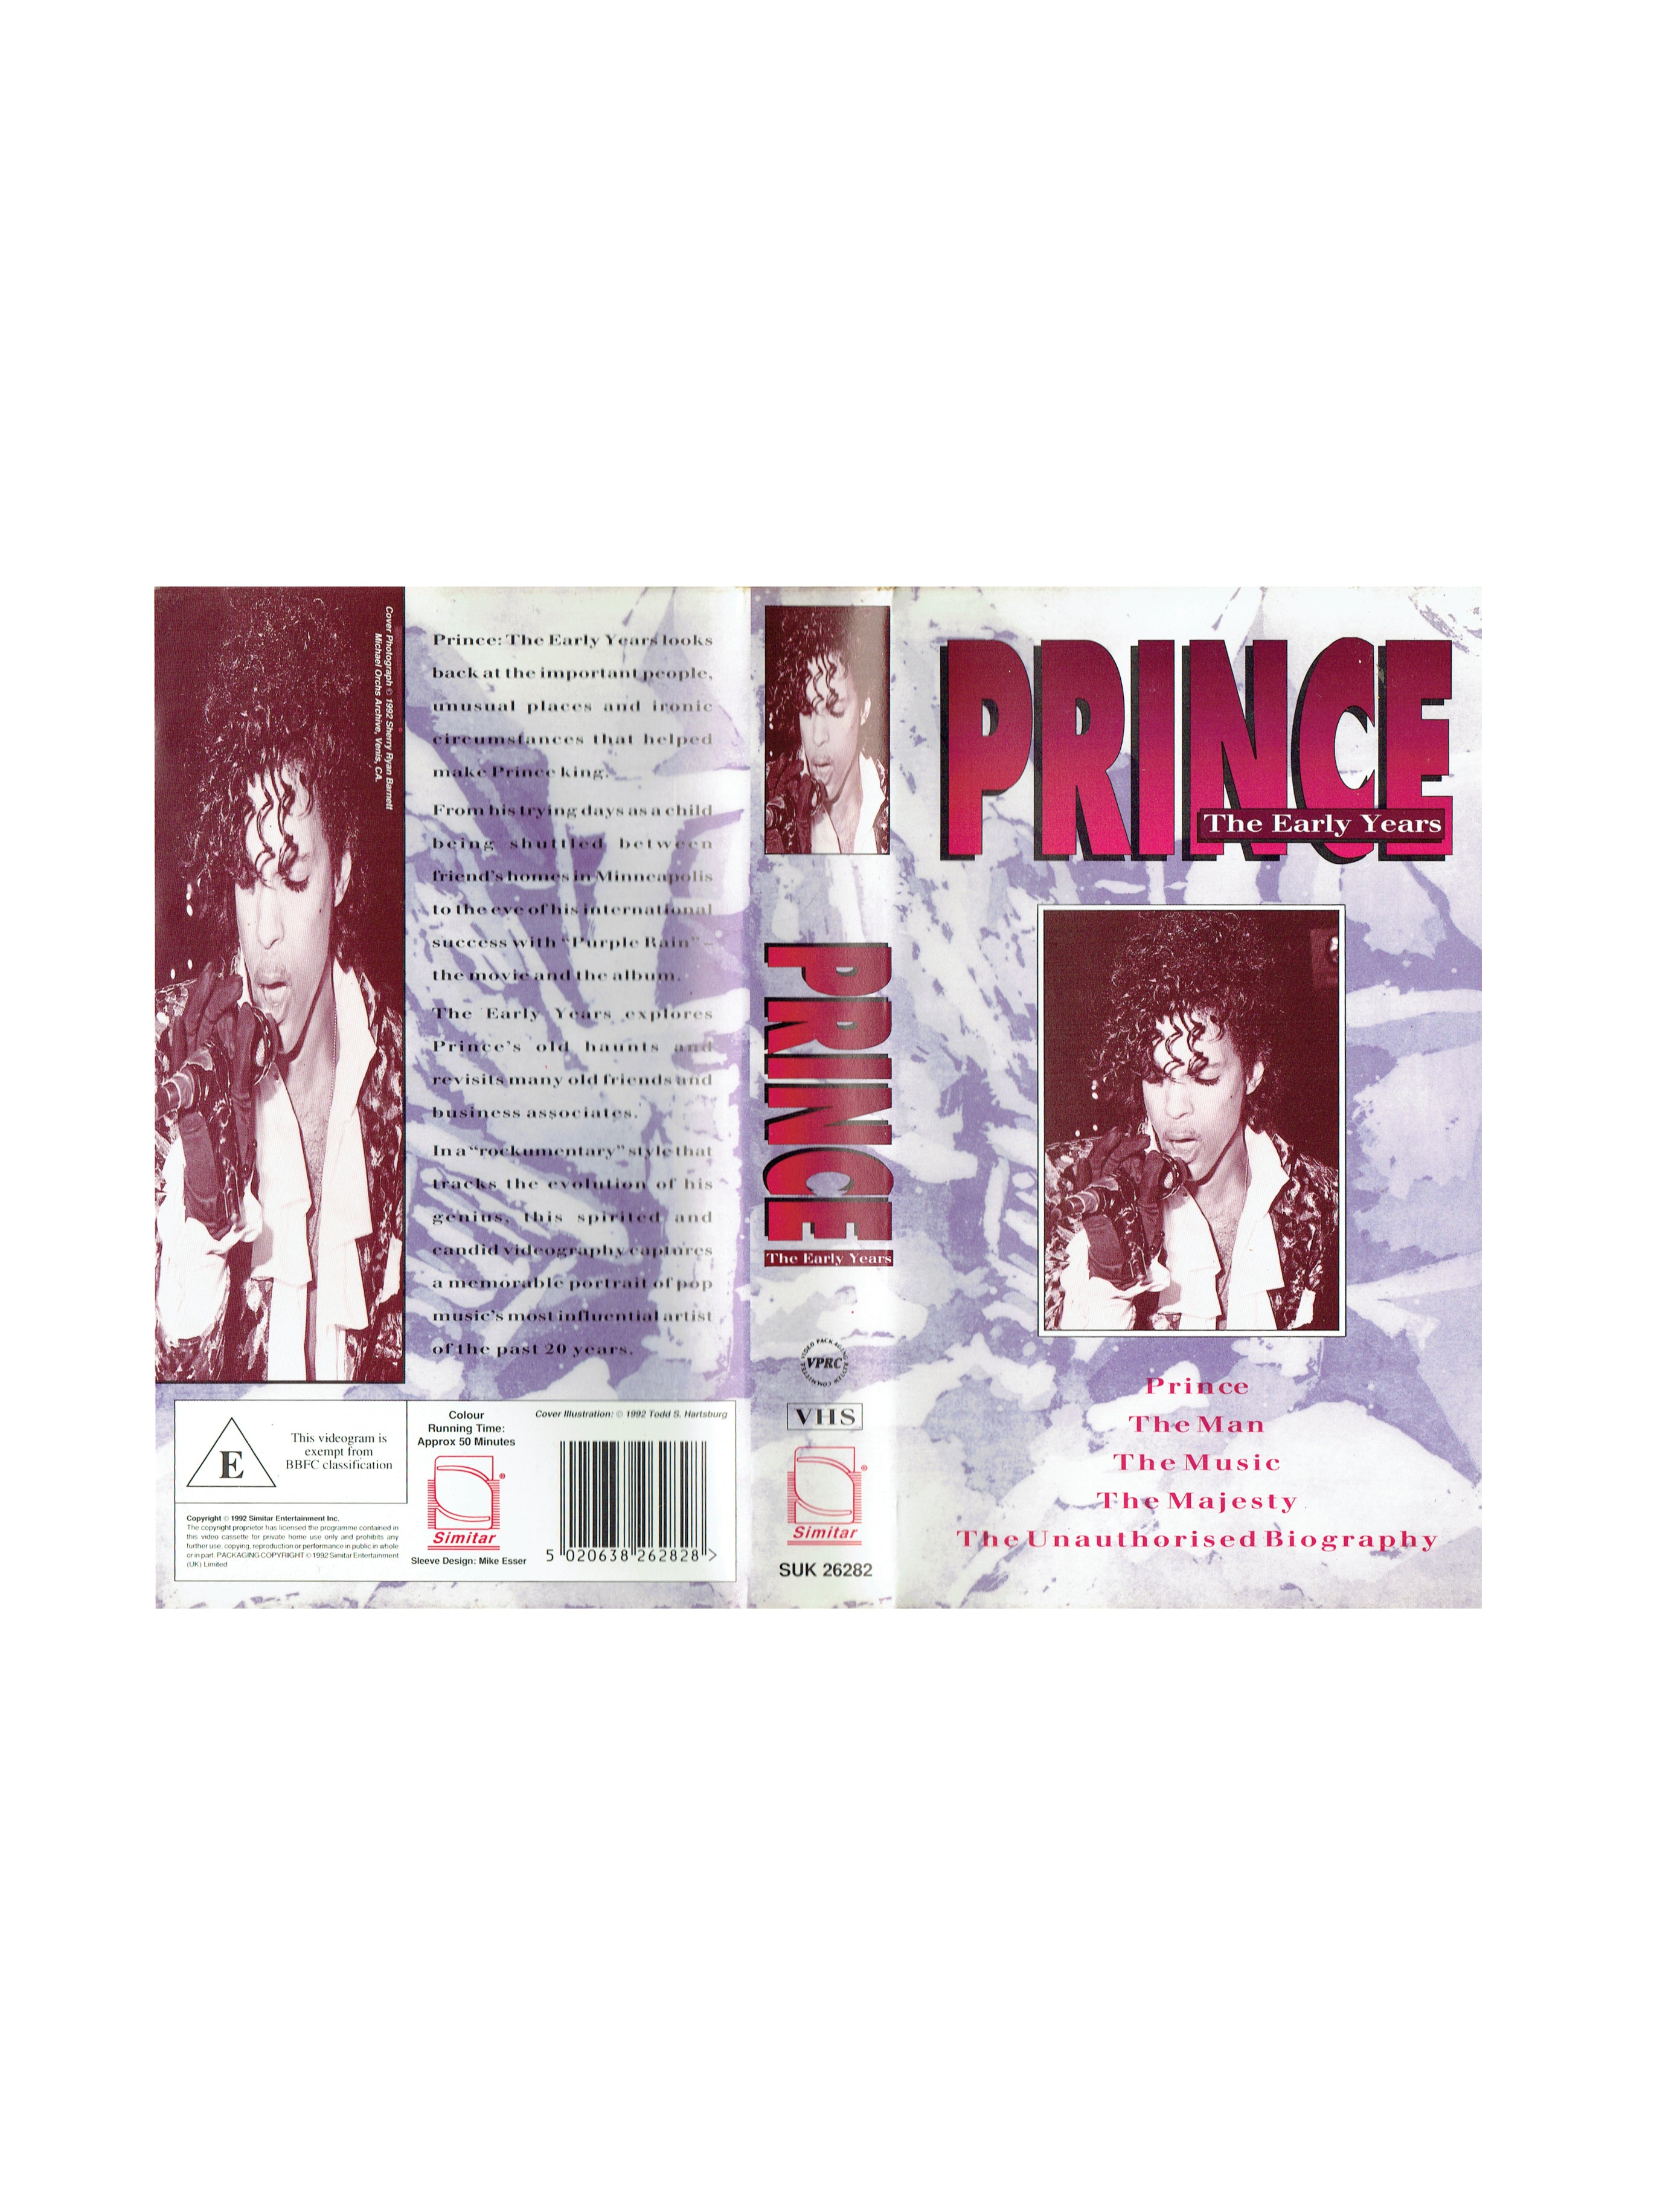 Prince The Early Years VHS Video Cassette IB